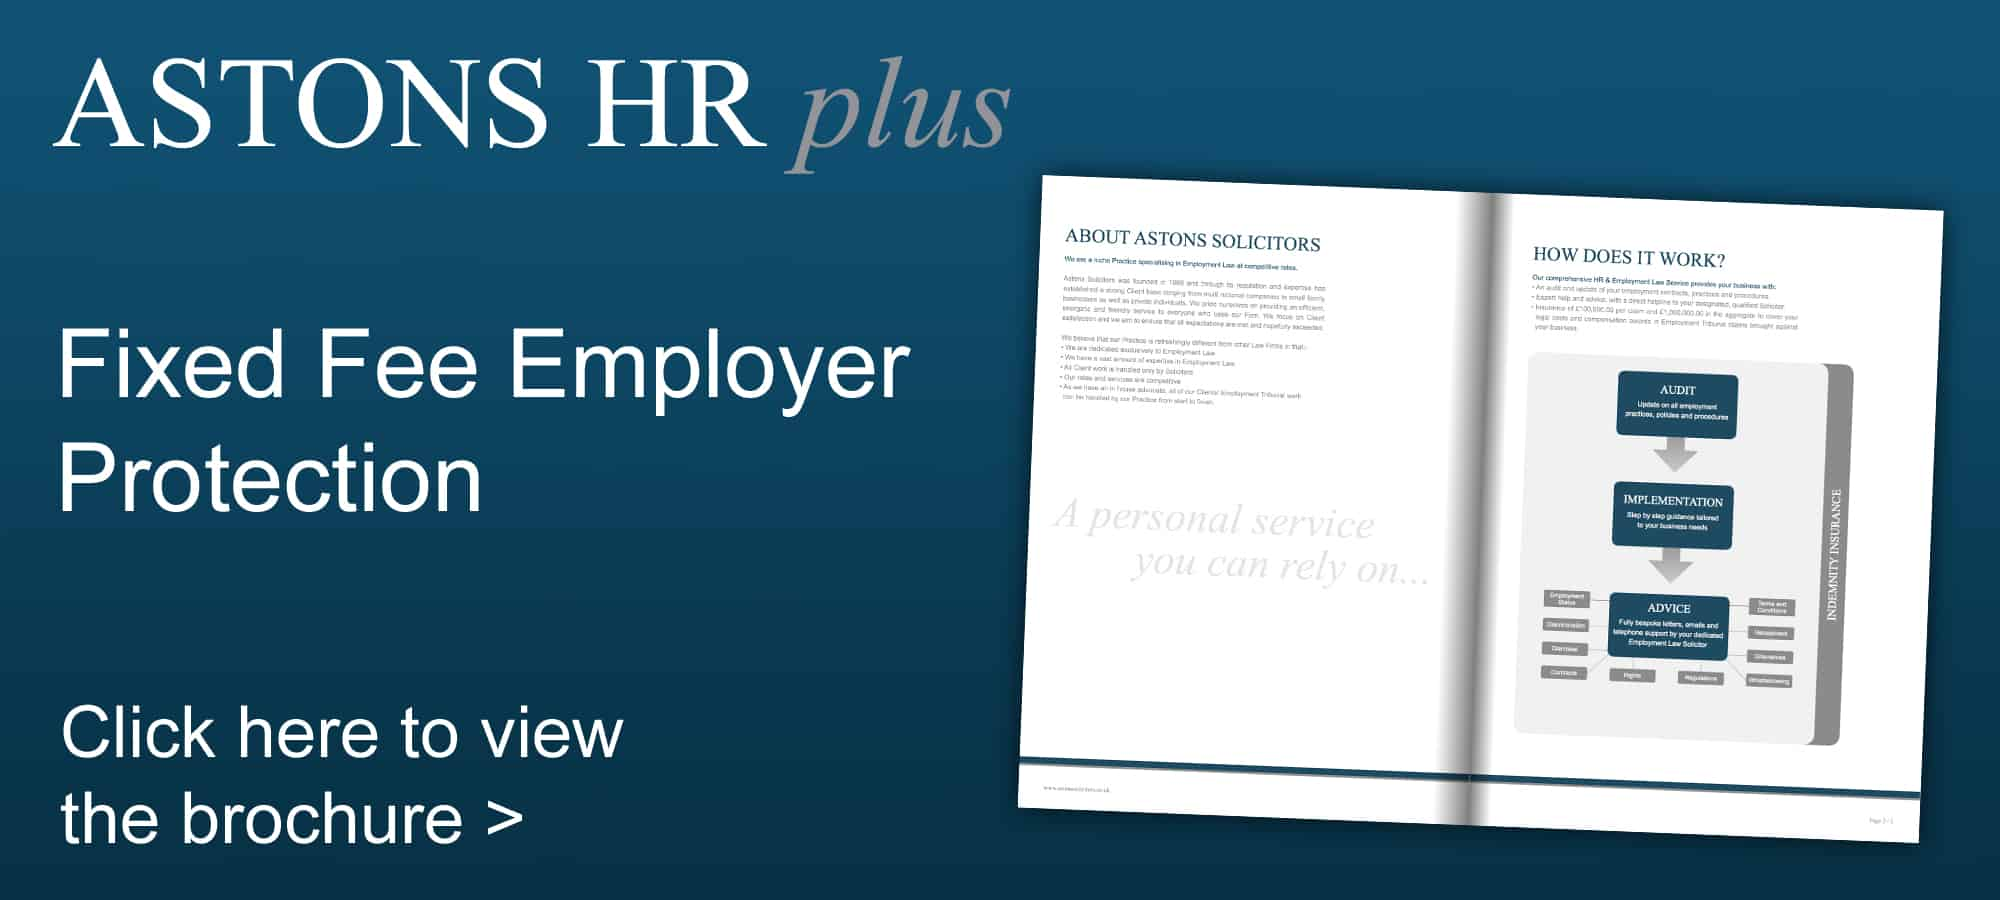 Astons HRplus - Fixed Fee Employer Protection